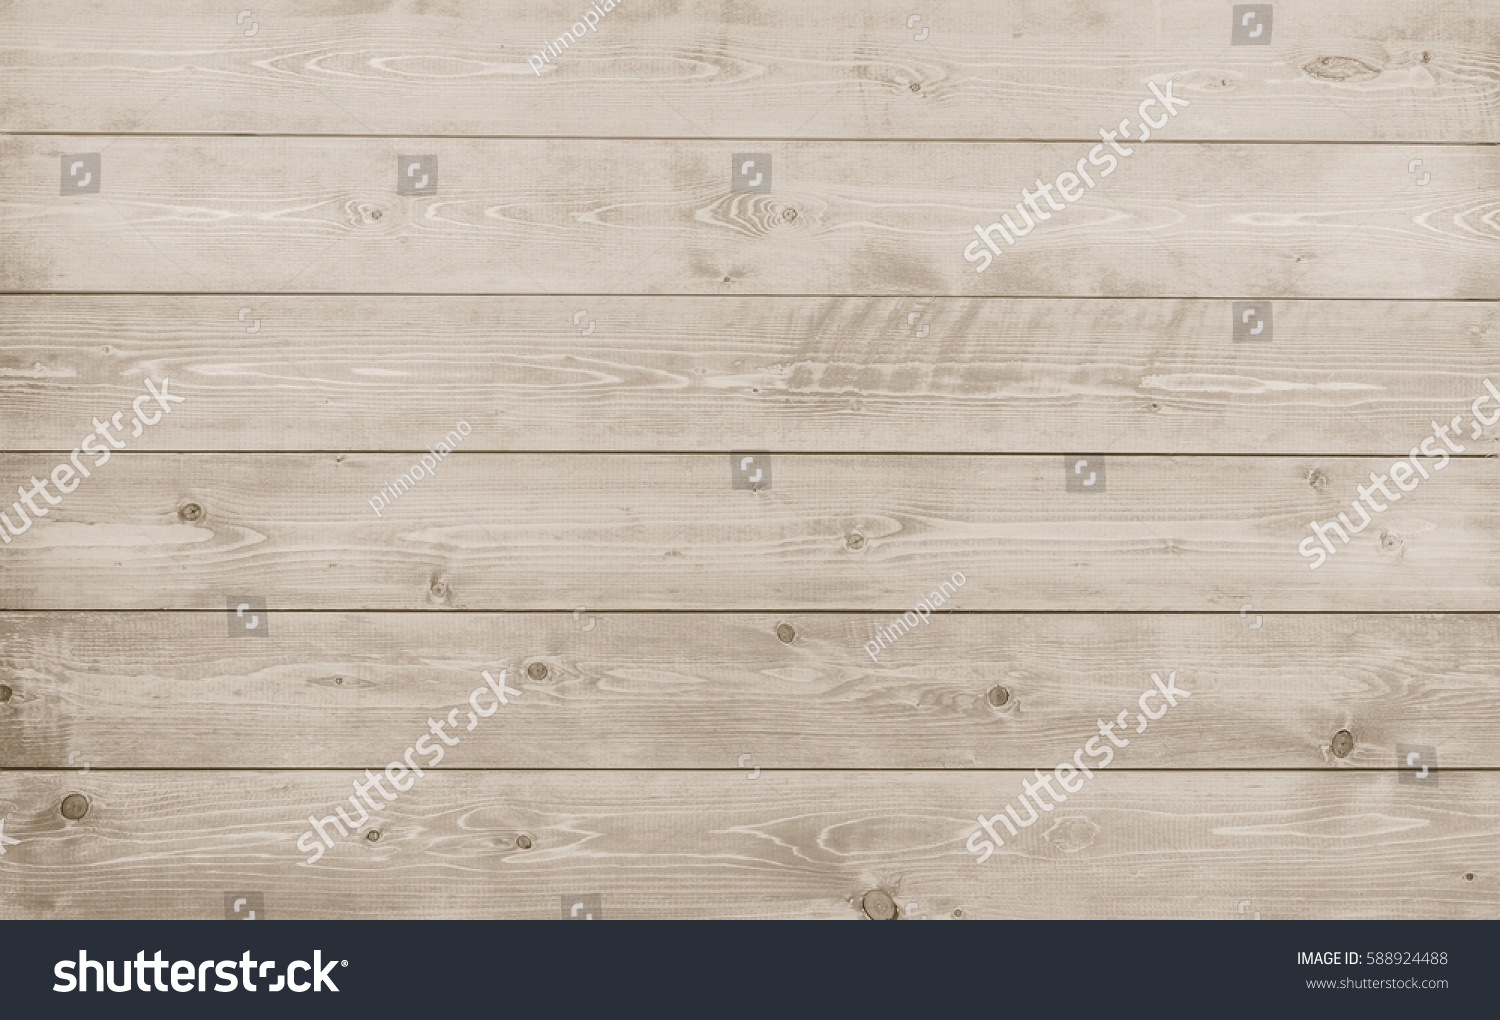 Wood table top texture - Light Wood Texture Background Surface With Old Natural Pattern Or Old Wood Texture Table Top View